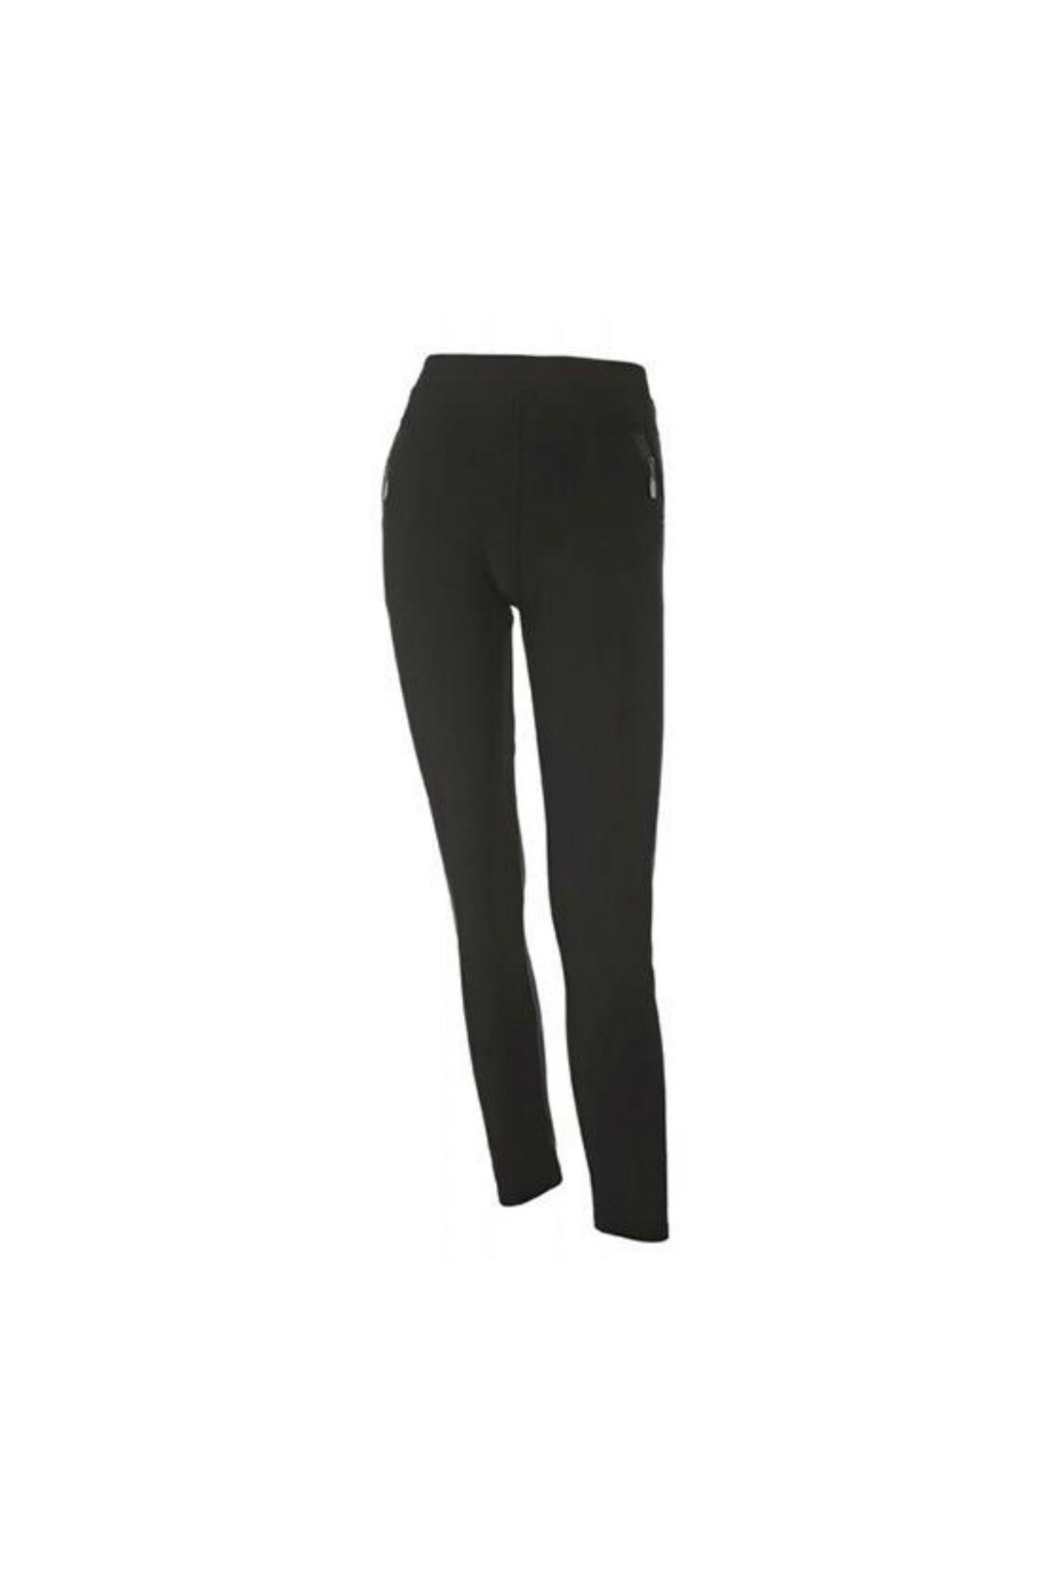 Coco + Carmen Black Zip Leggings - Main Image